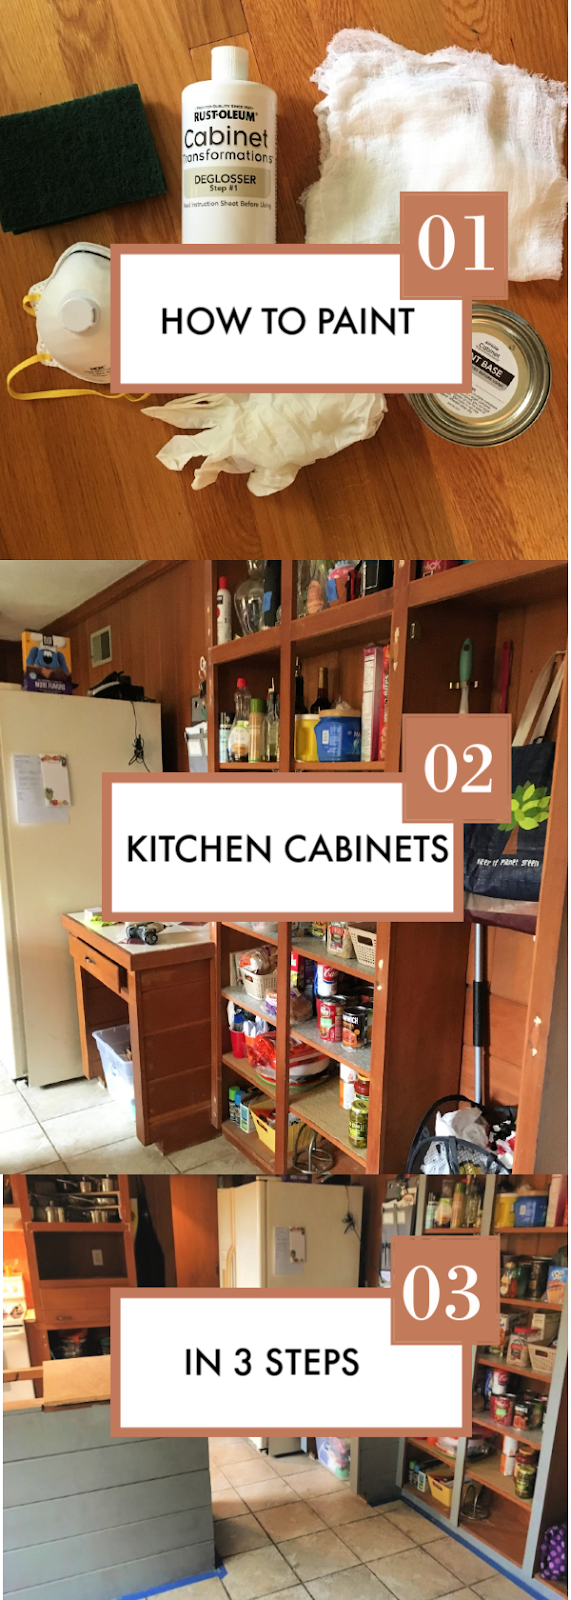 How to Paint Wood Cabinets with Rust-Oleum Cabinet Transformation (One Room Challenge)